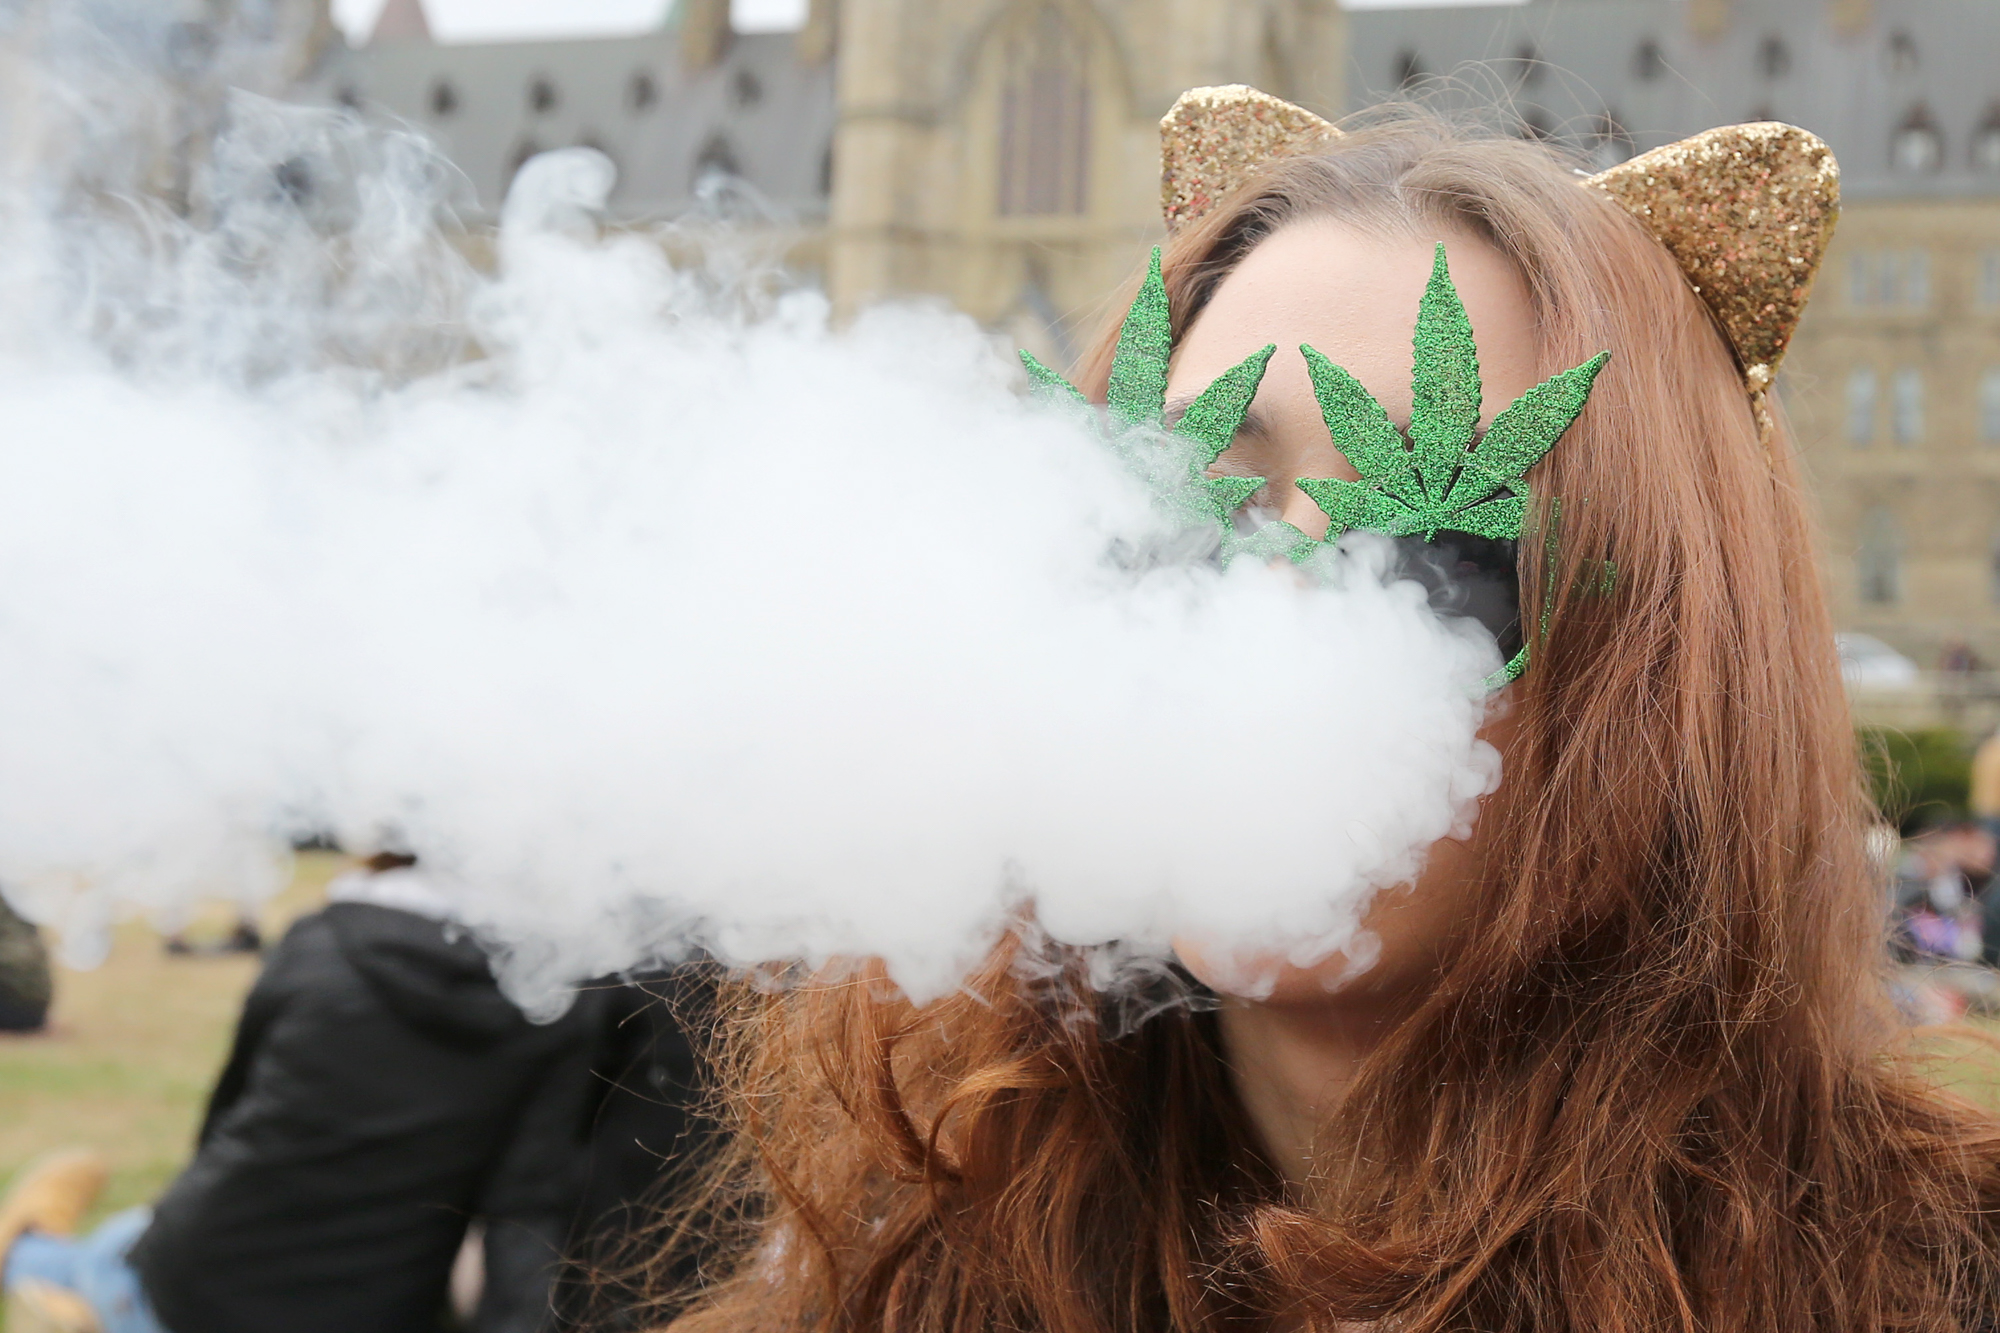 Legal weed is coming to Canada in 2018. Here%E2%80%99s what your province will look like 1 of 5 Legal weed is coming to Canada in 2018. Heres what your province will look like.